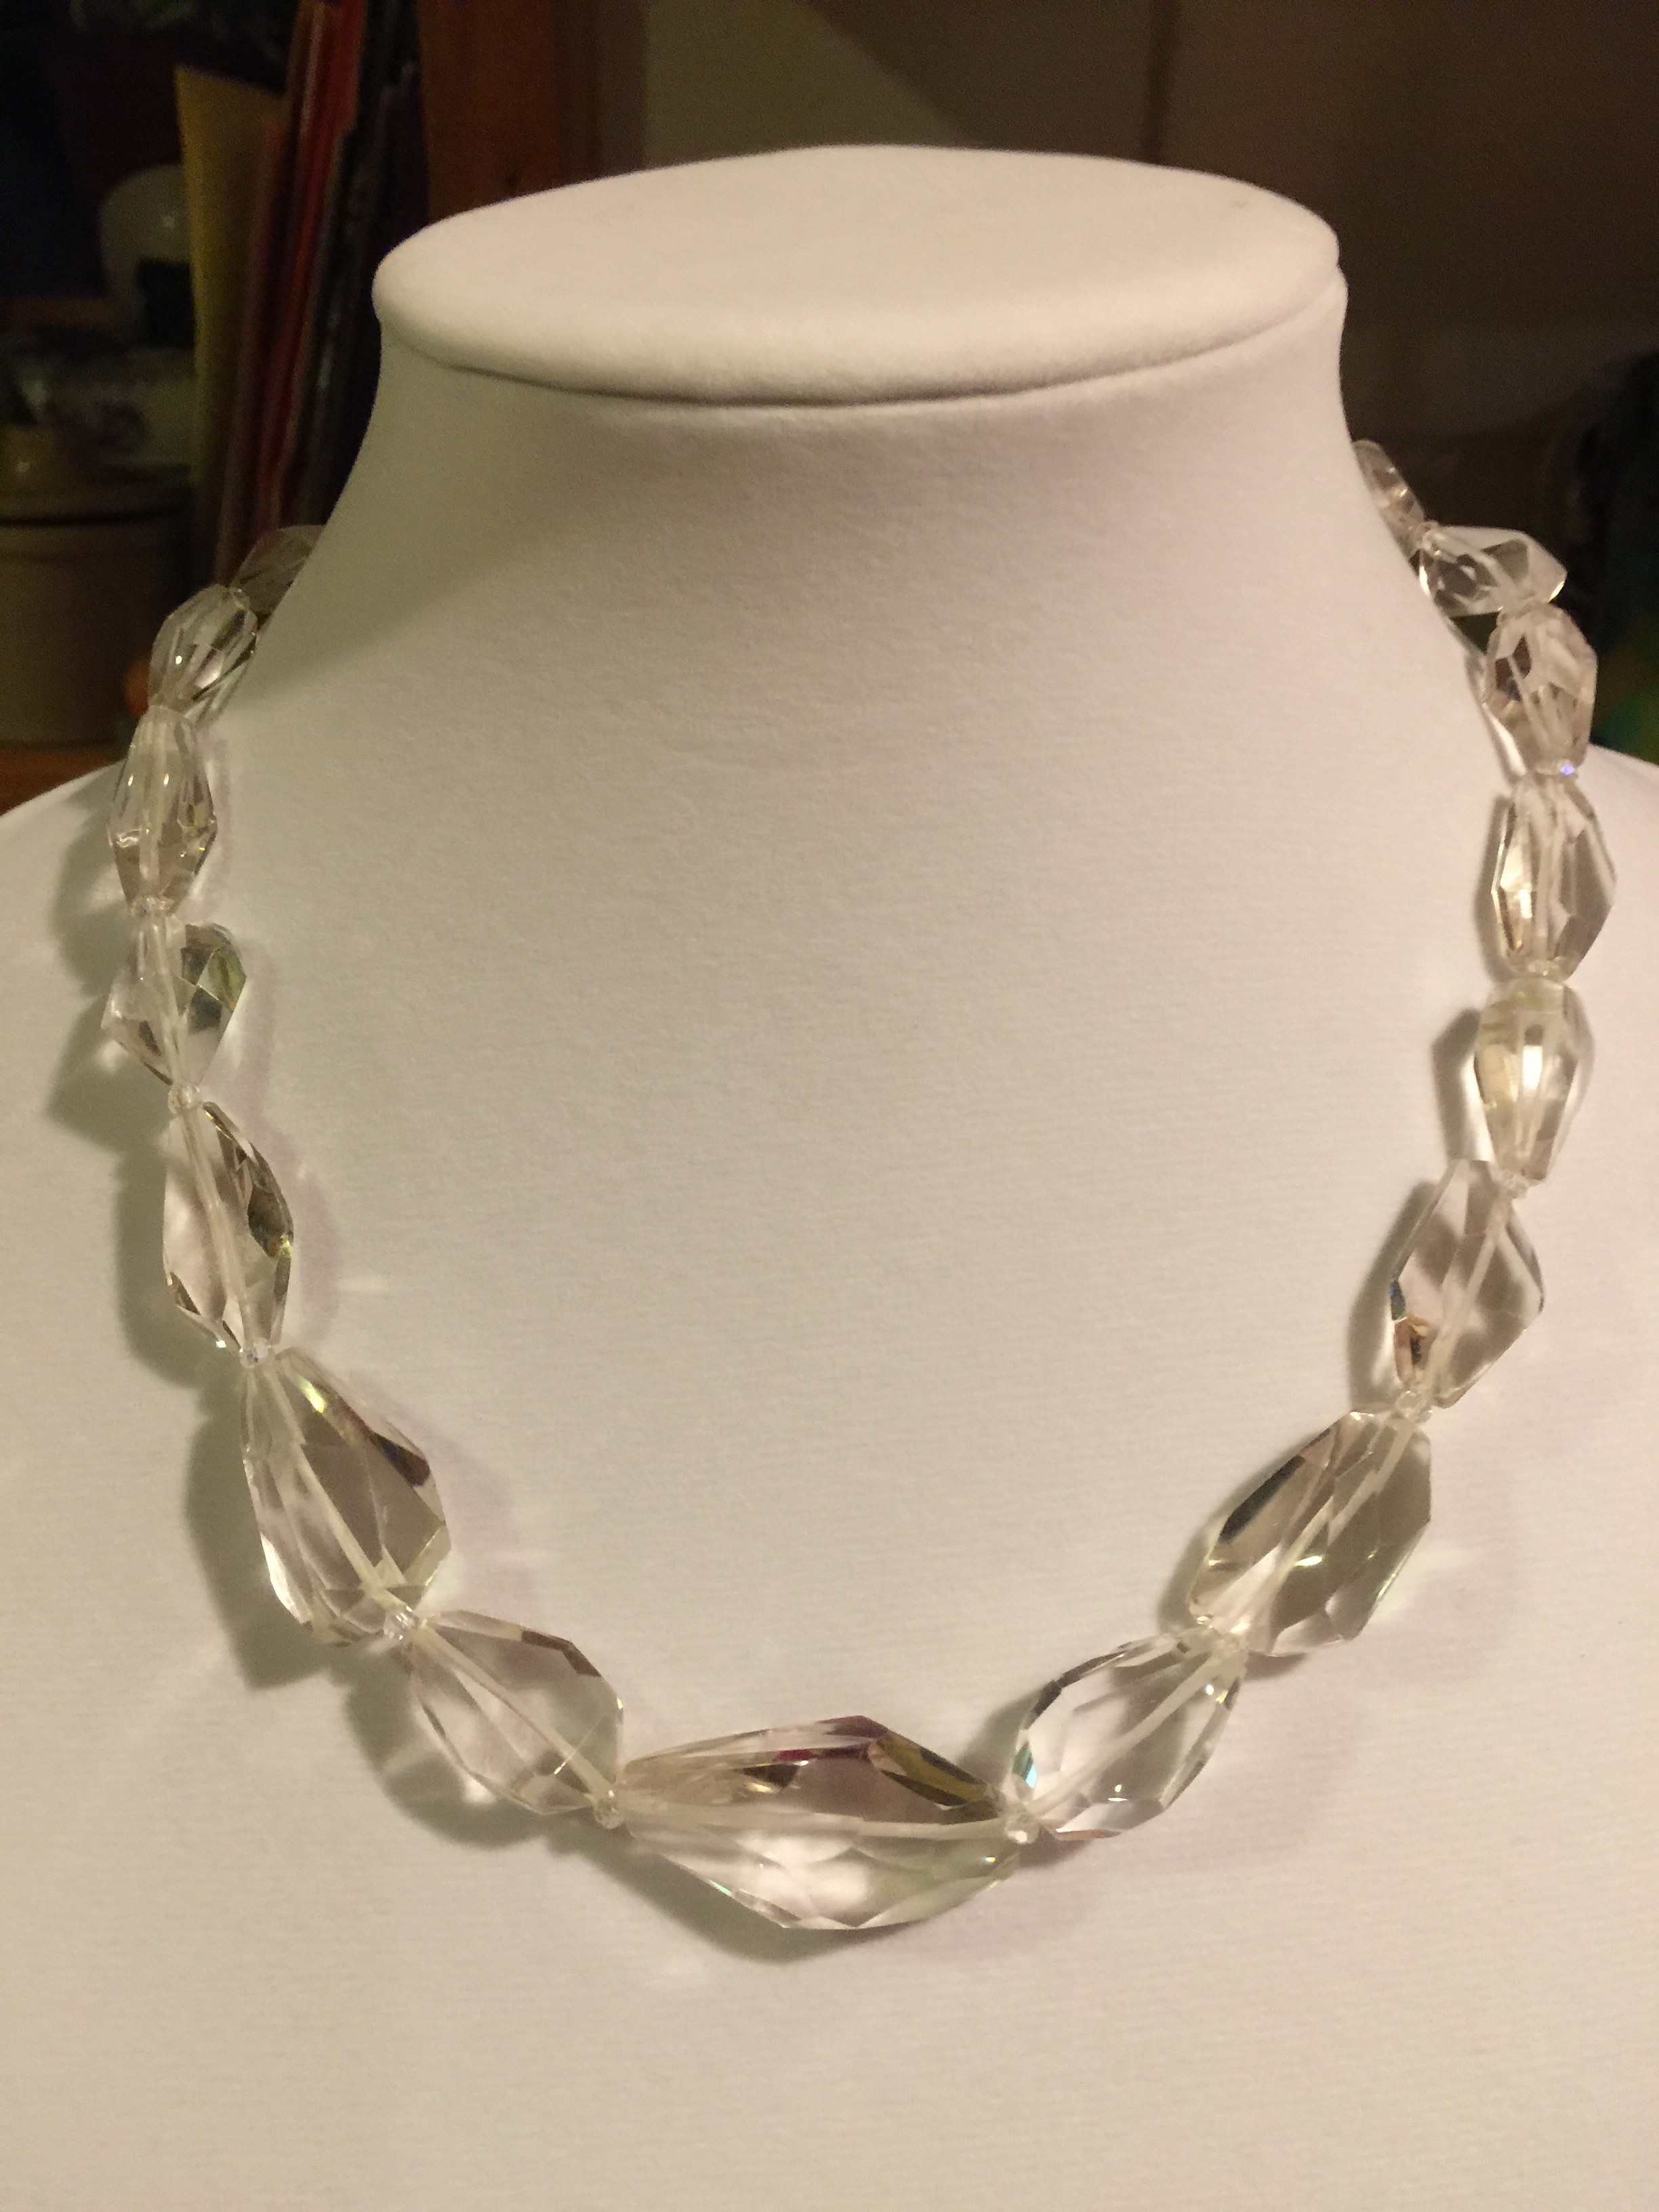 Clear quartz necklace  Faceted clear quartz with glass beads and handmade sterling silver clasp.